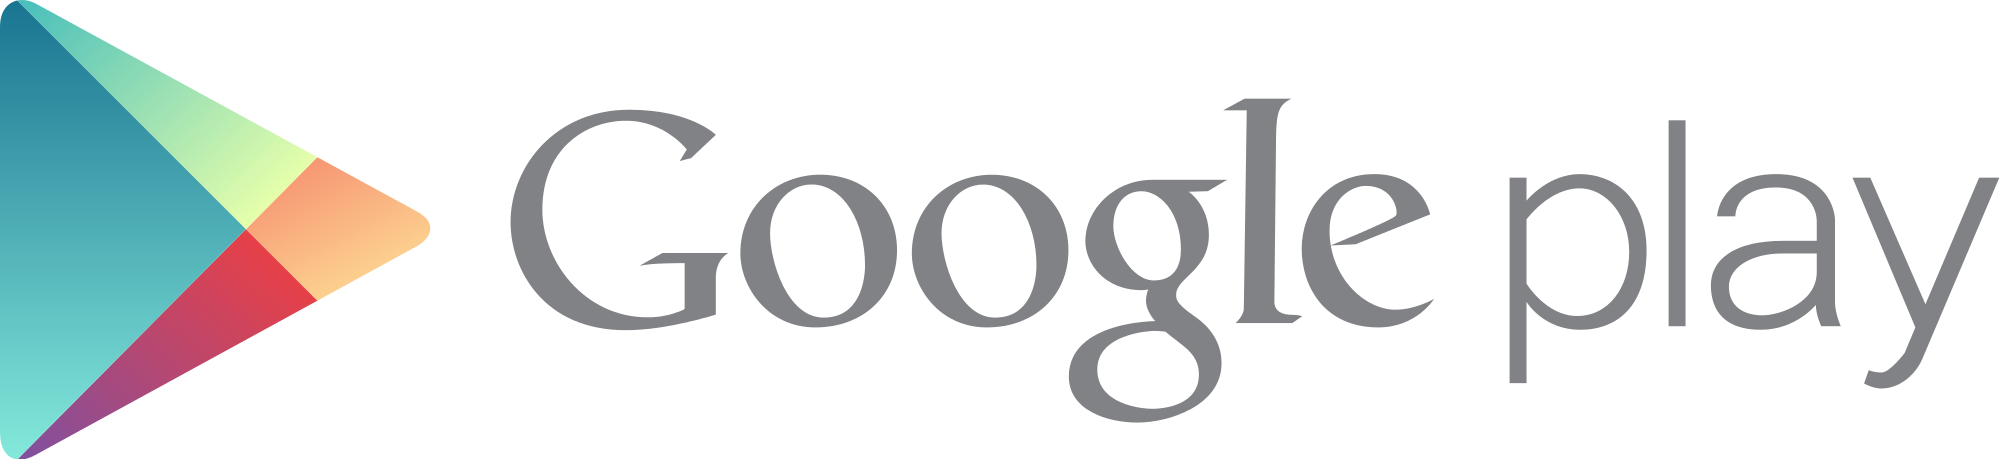 Googleplay logo